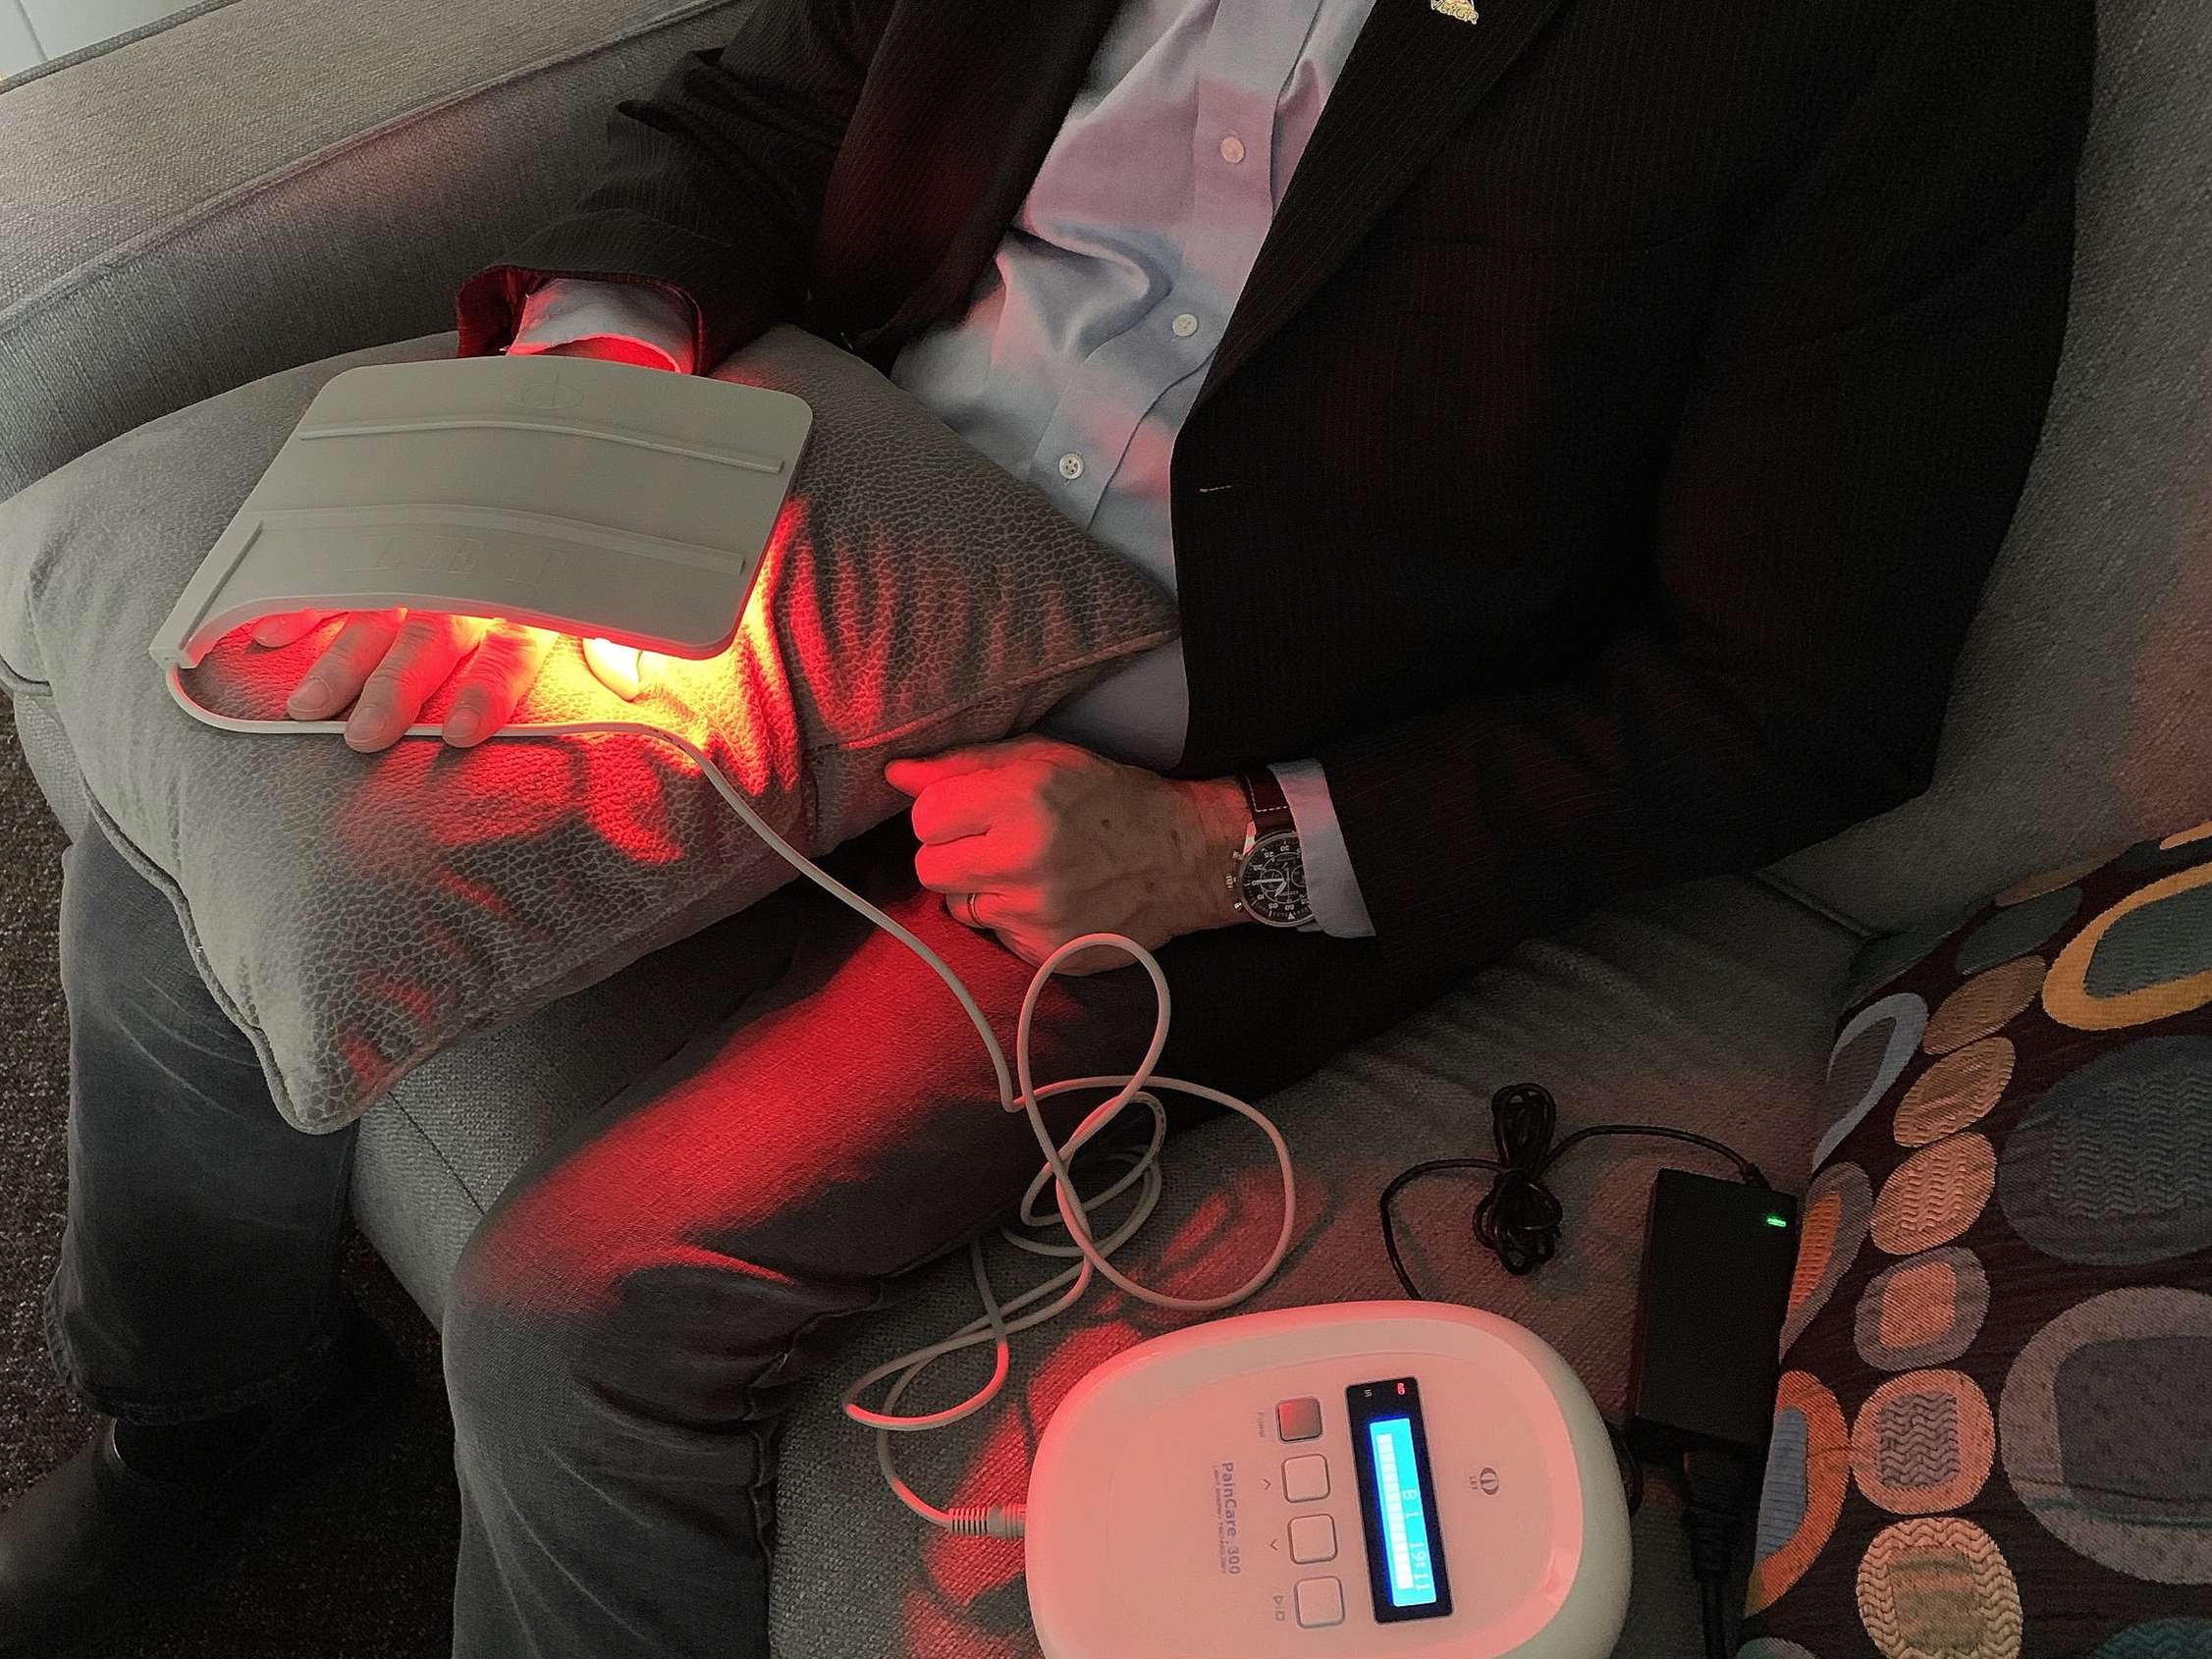 Live, pain free - Do you suffer from chronic pain? VetGR has partnered up with the very best in the LED Red Light industry, and health and wellness to bring relief to our suffering veterans.